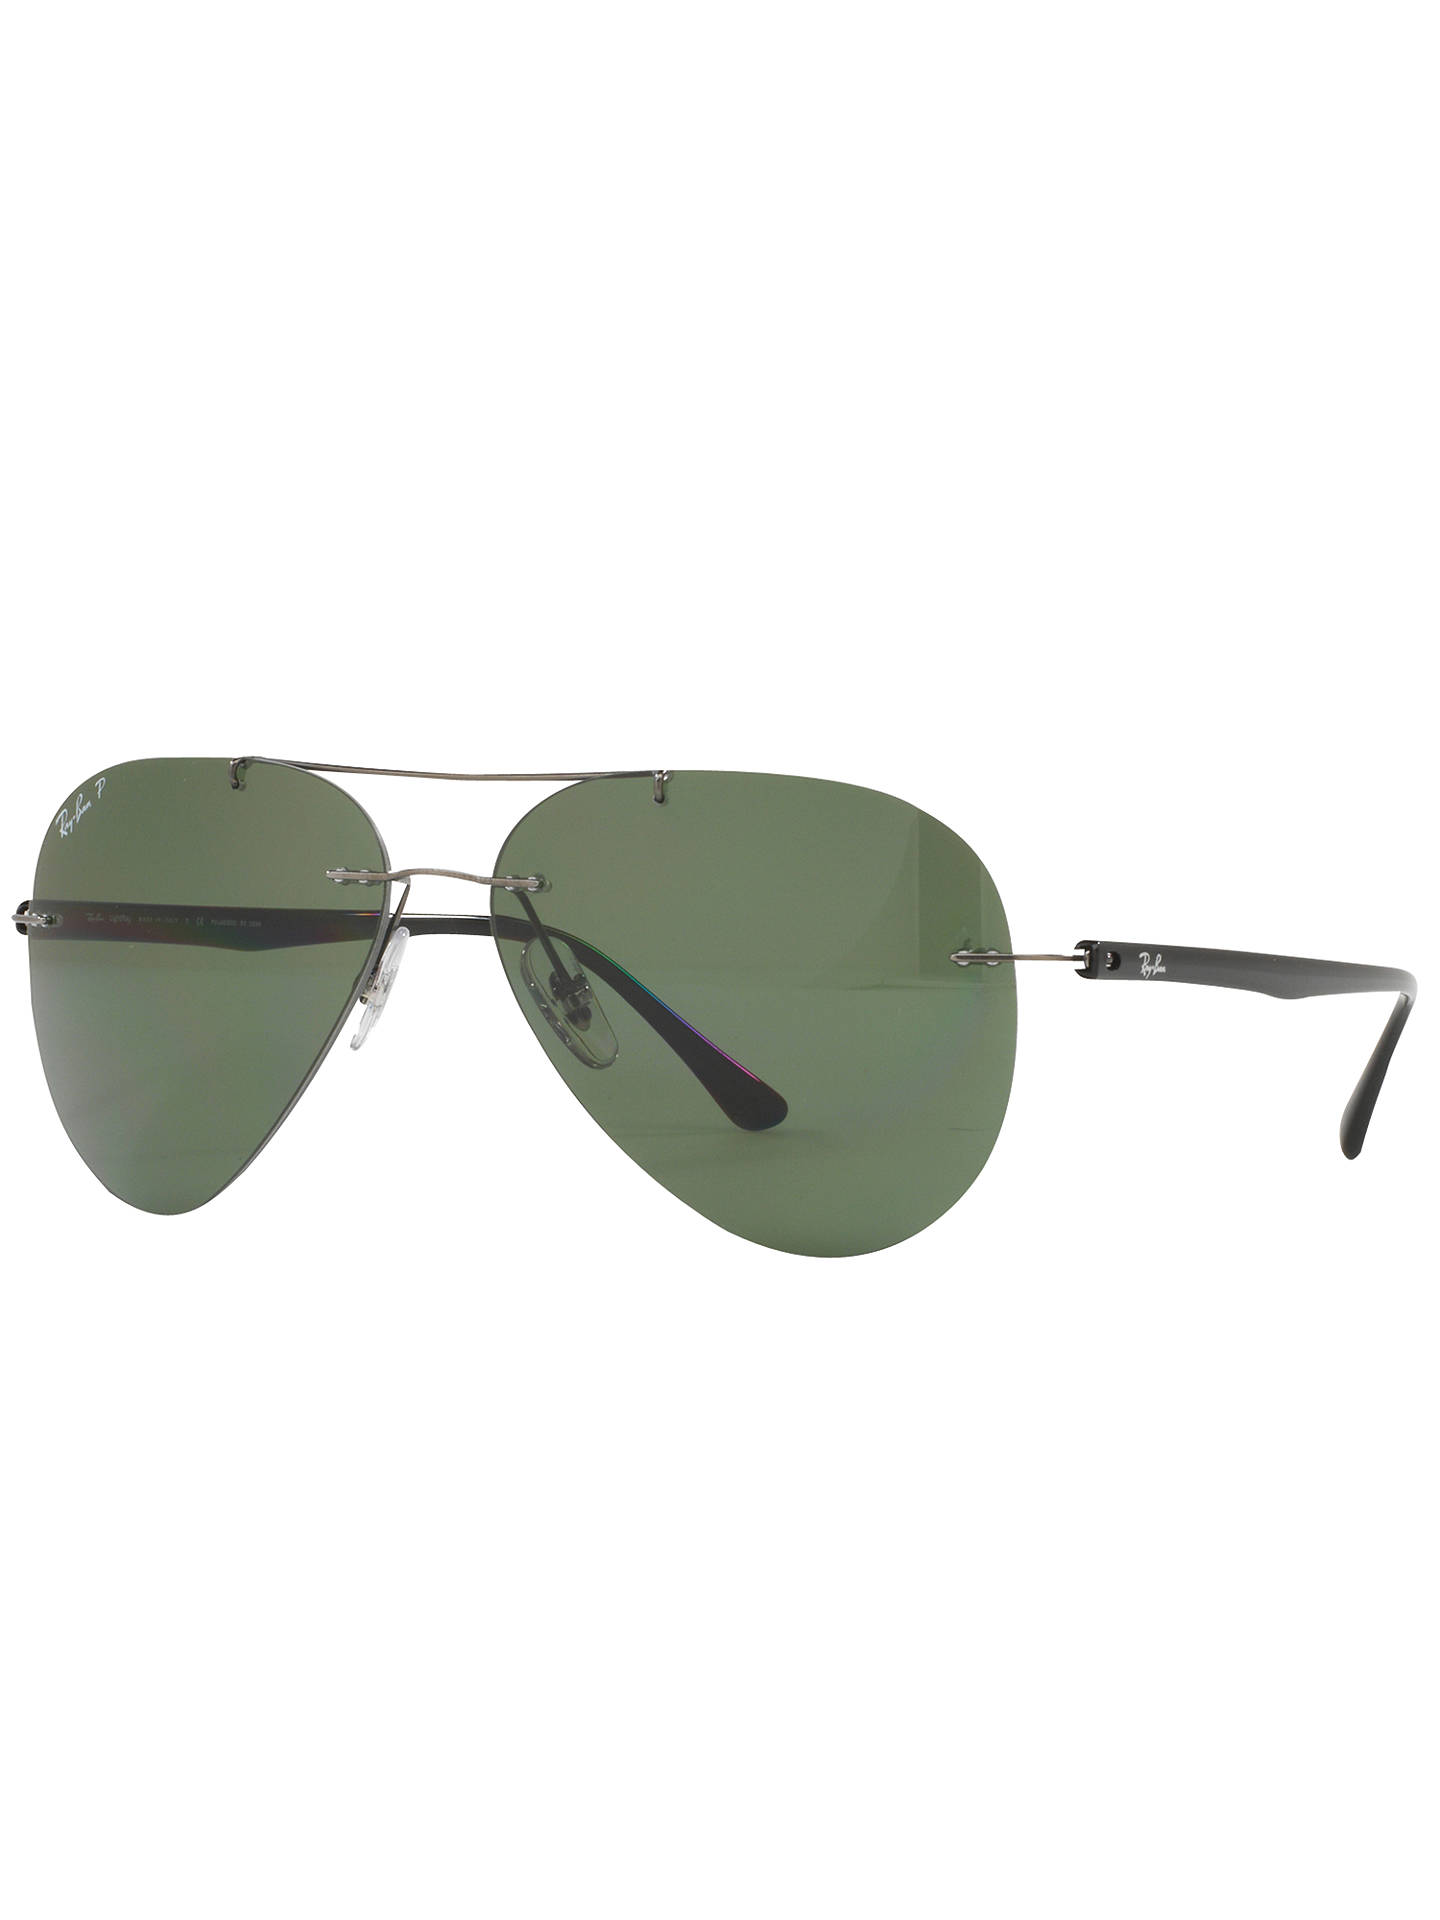 44f3e5206b4 BuyRay-Ban RB8058 Polarised Frameless Aviator Sunglasses